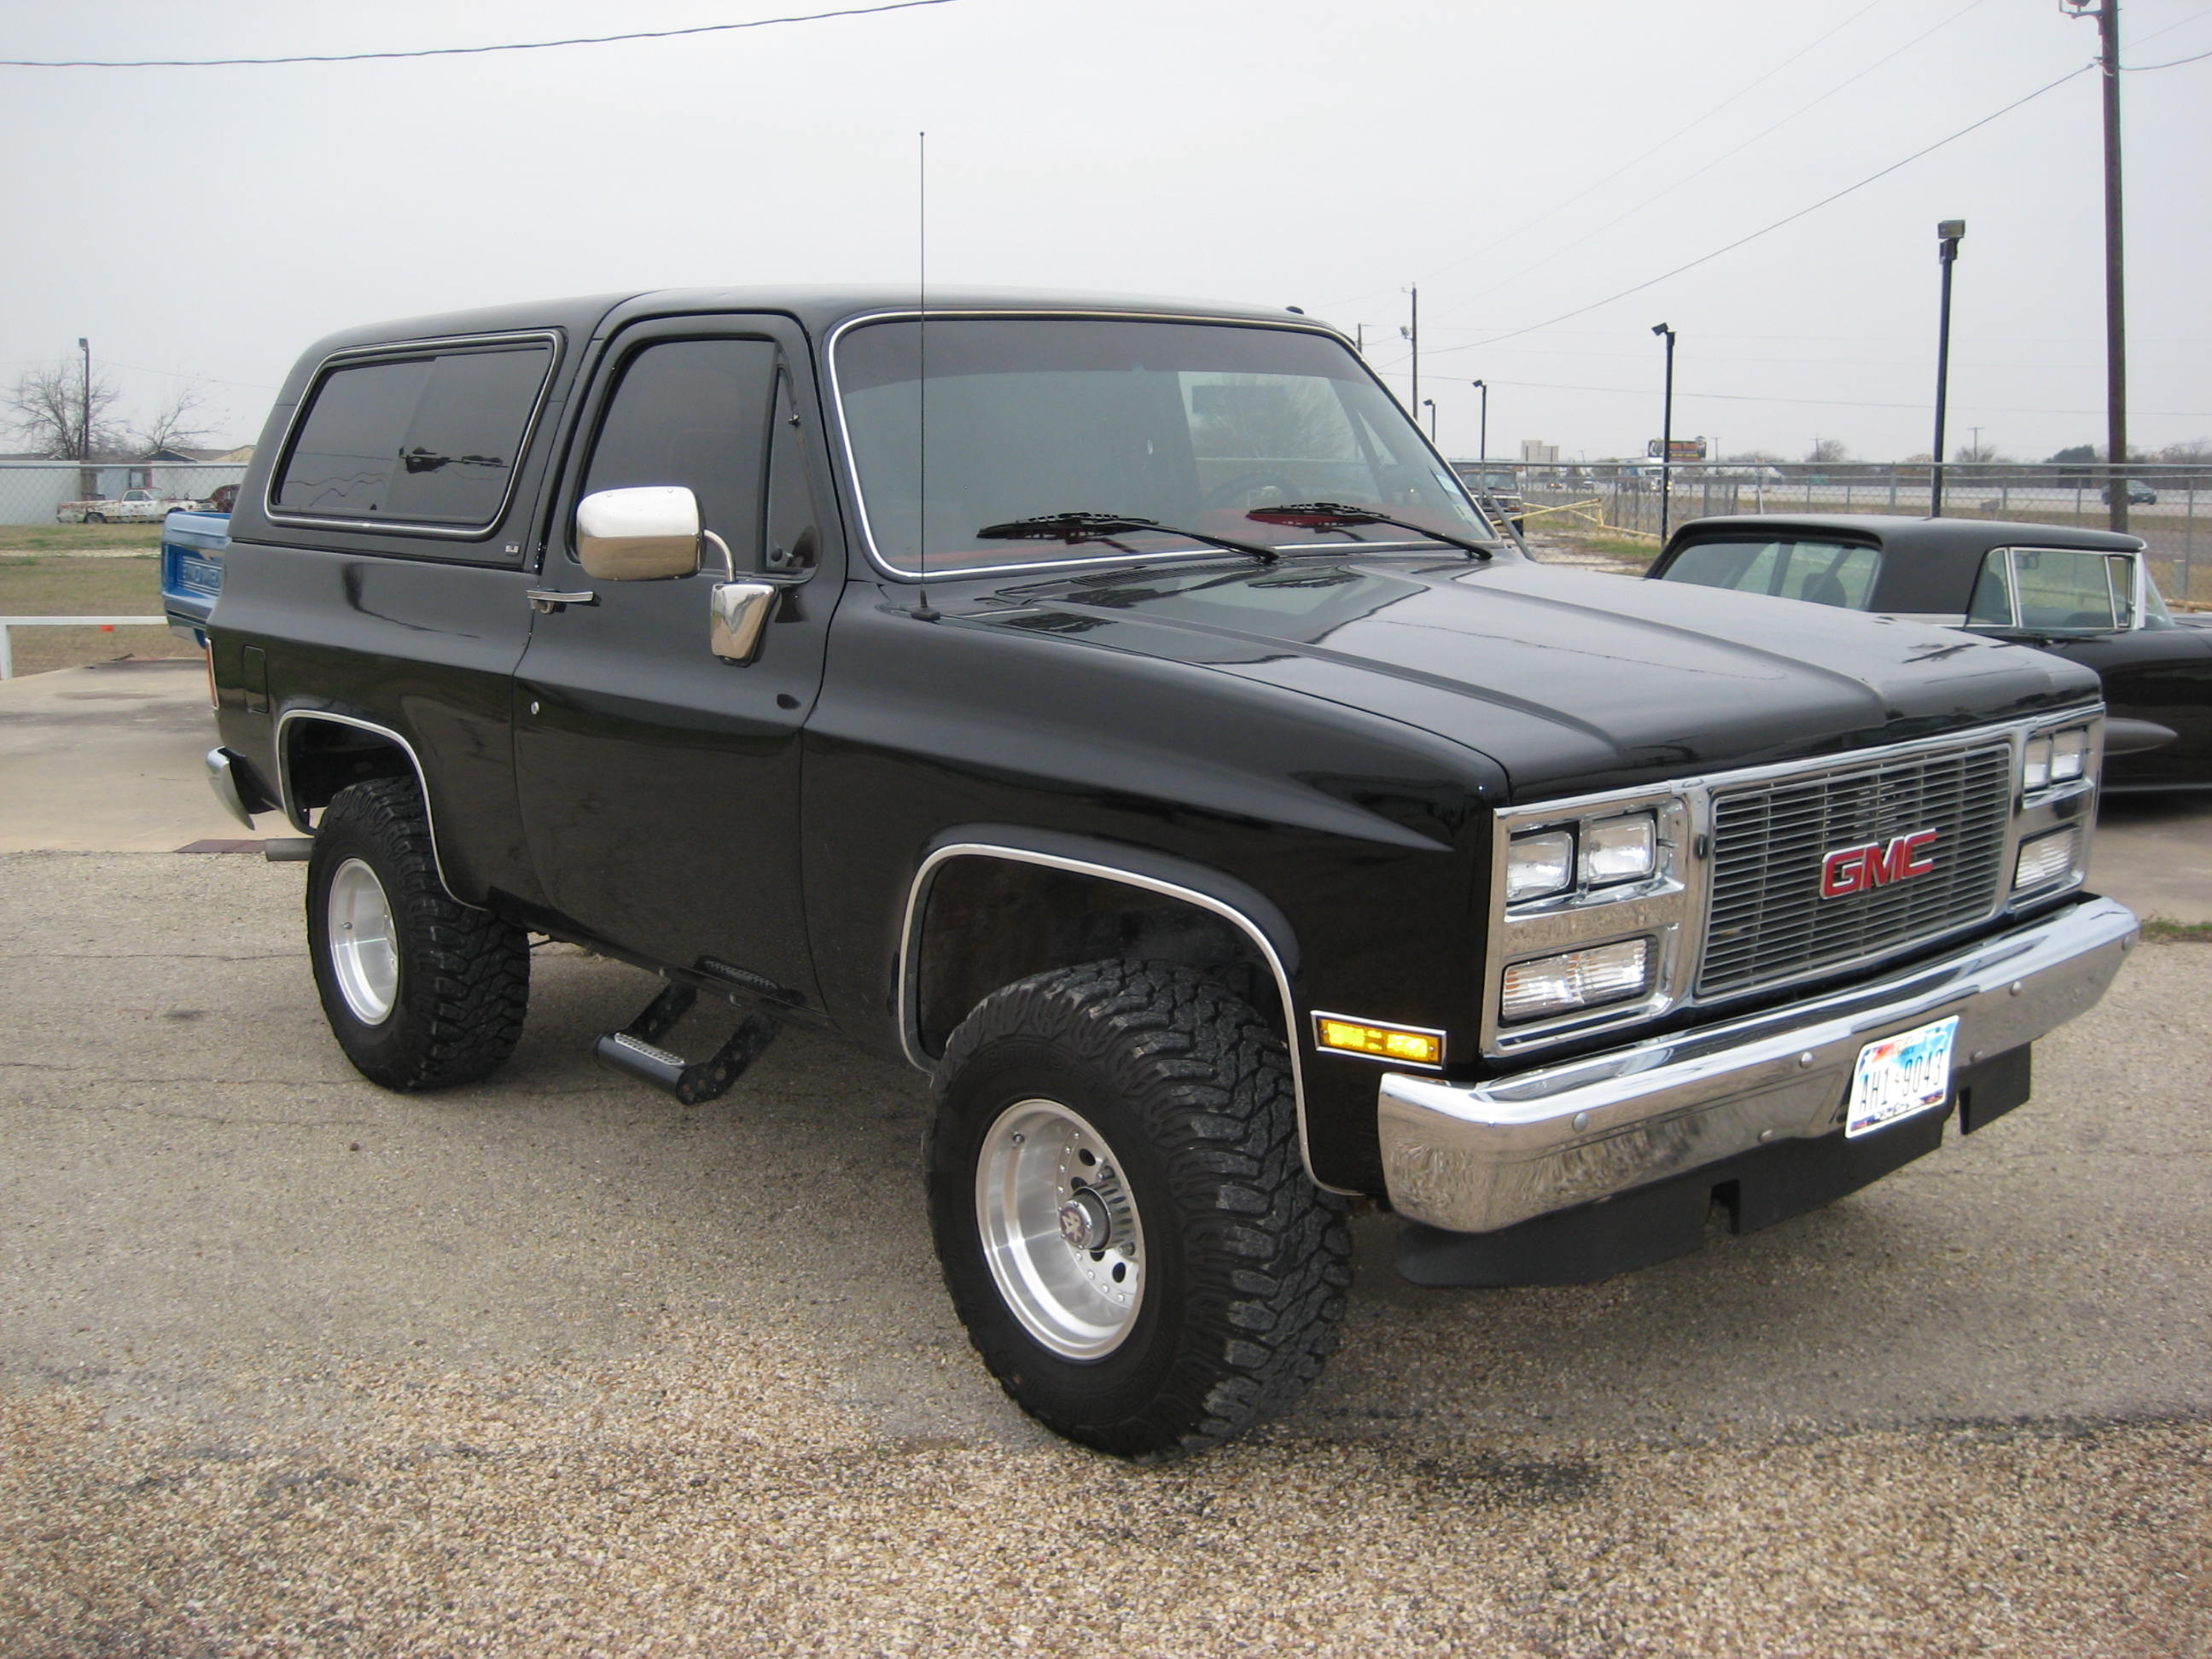 trucks performancetrucks jimmy net for suv forums gmc sale image classifieds